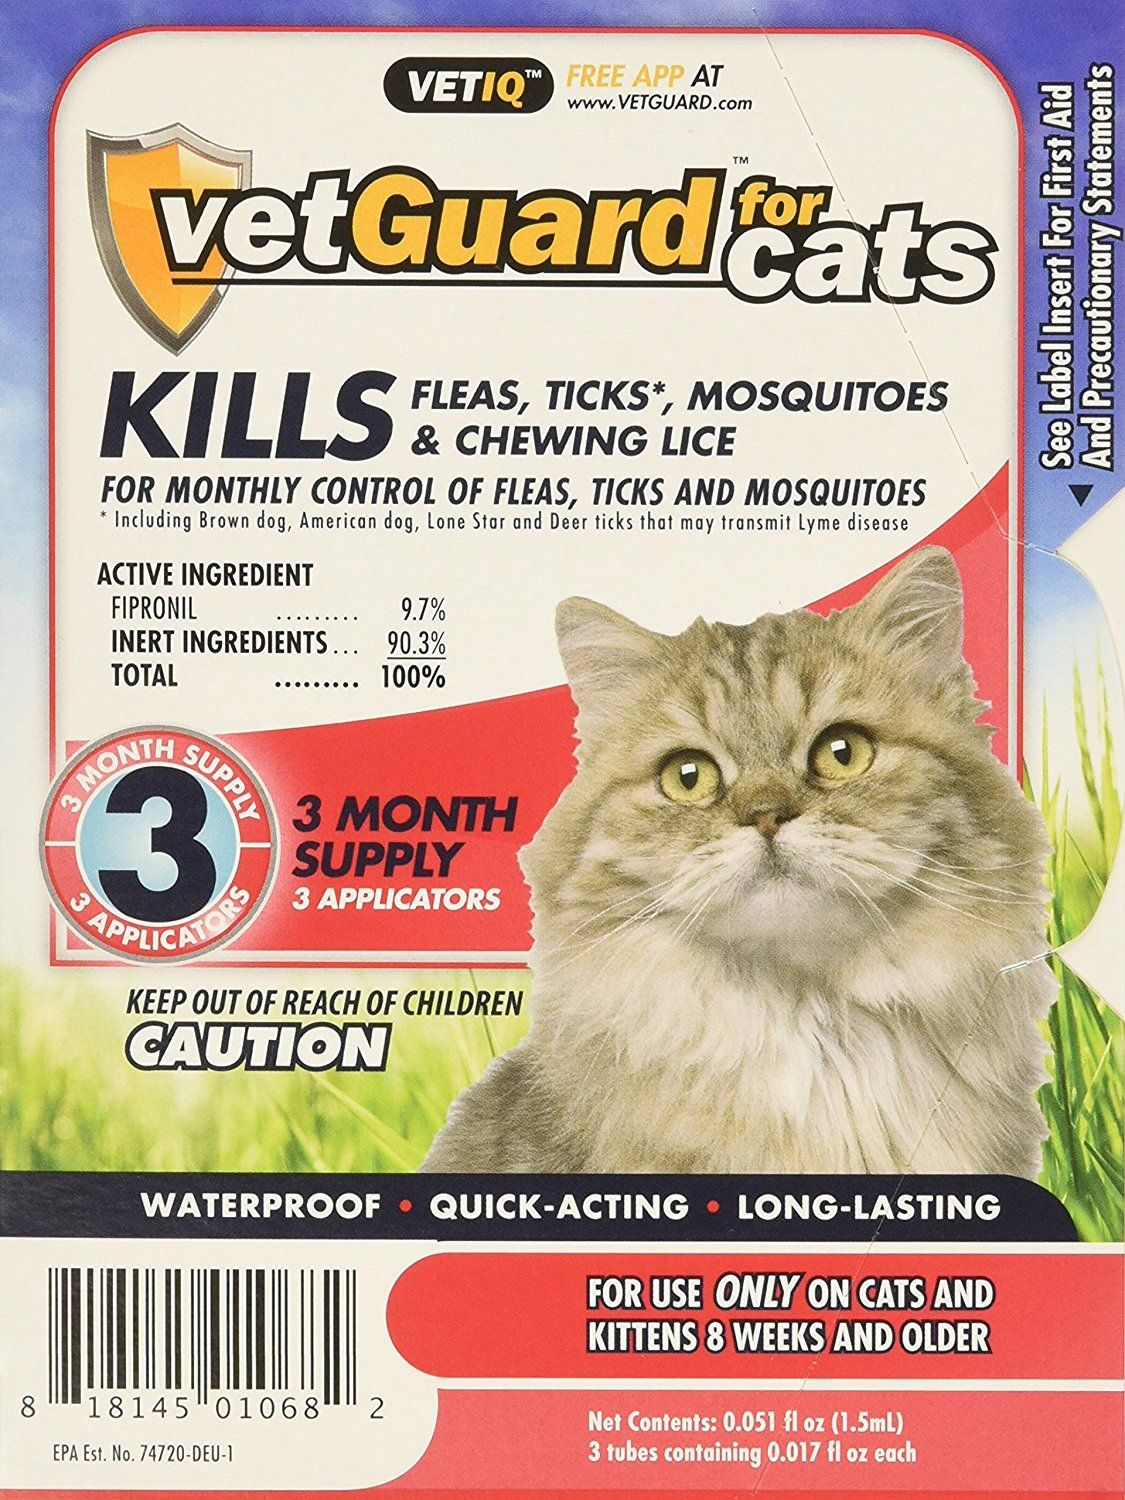 Vetguard Plus Flea And Tick Drops For Cats All Sizes For More Information Visit Image Link Petcats Fleas Flea And Tick Cat Fleas